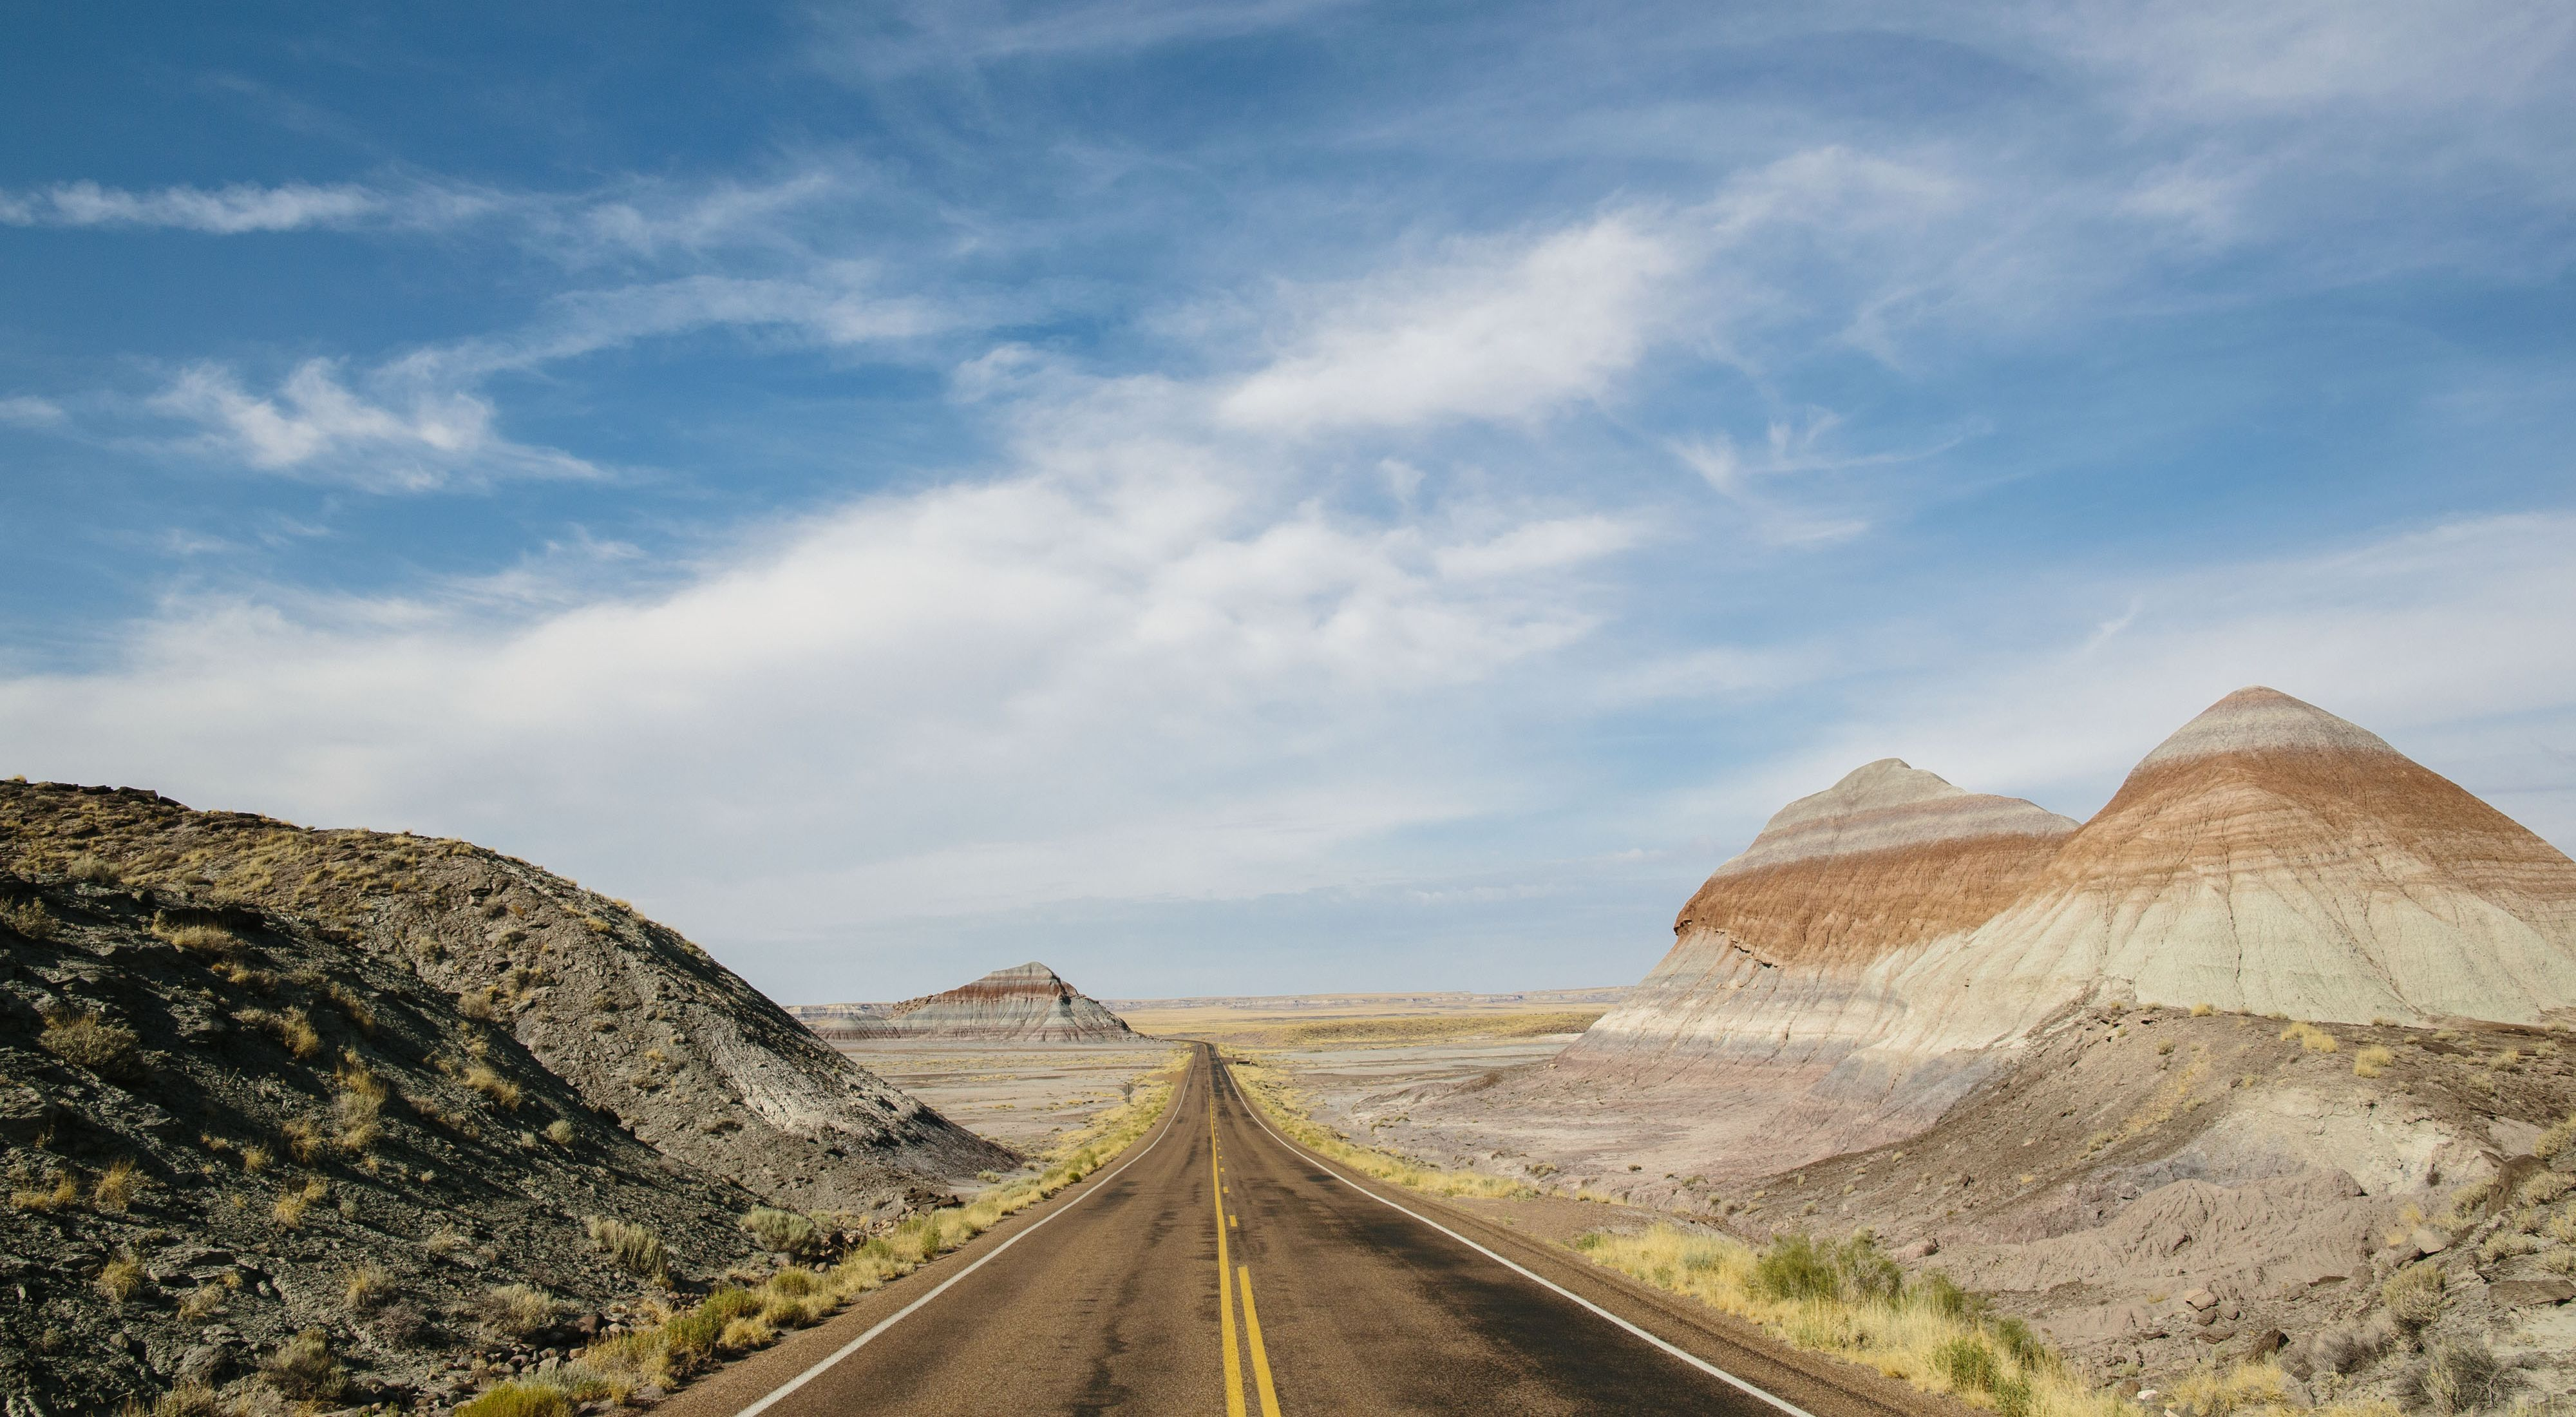 A view of the road through Petrified Forest National Park in Arizona.